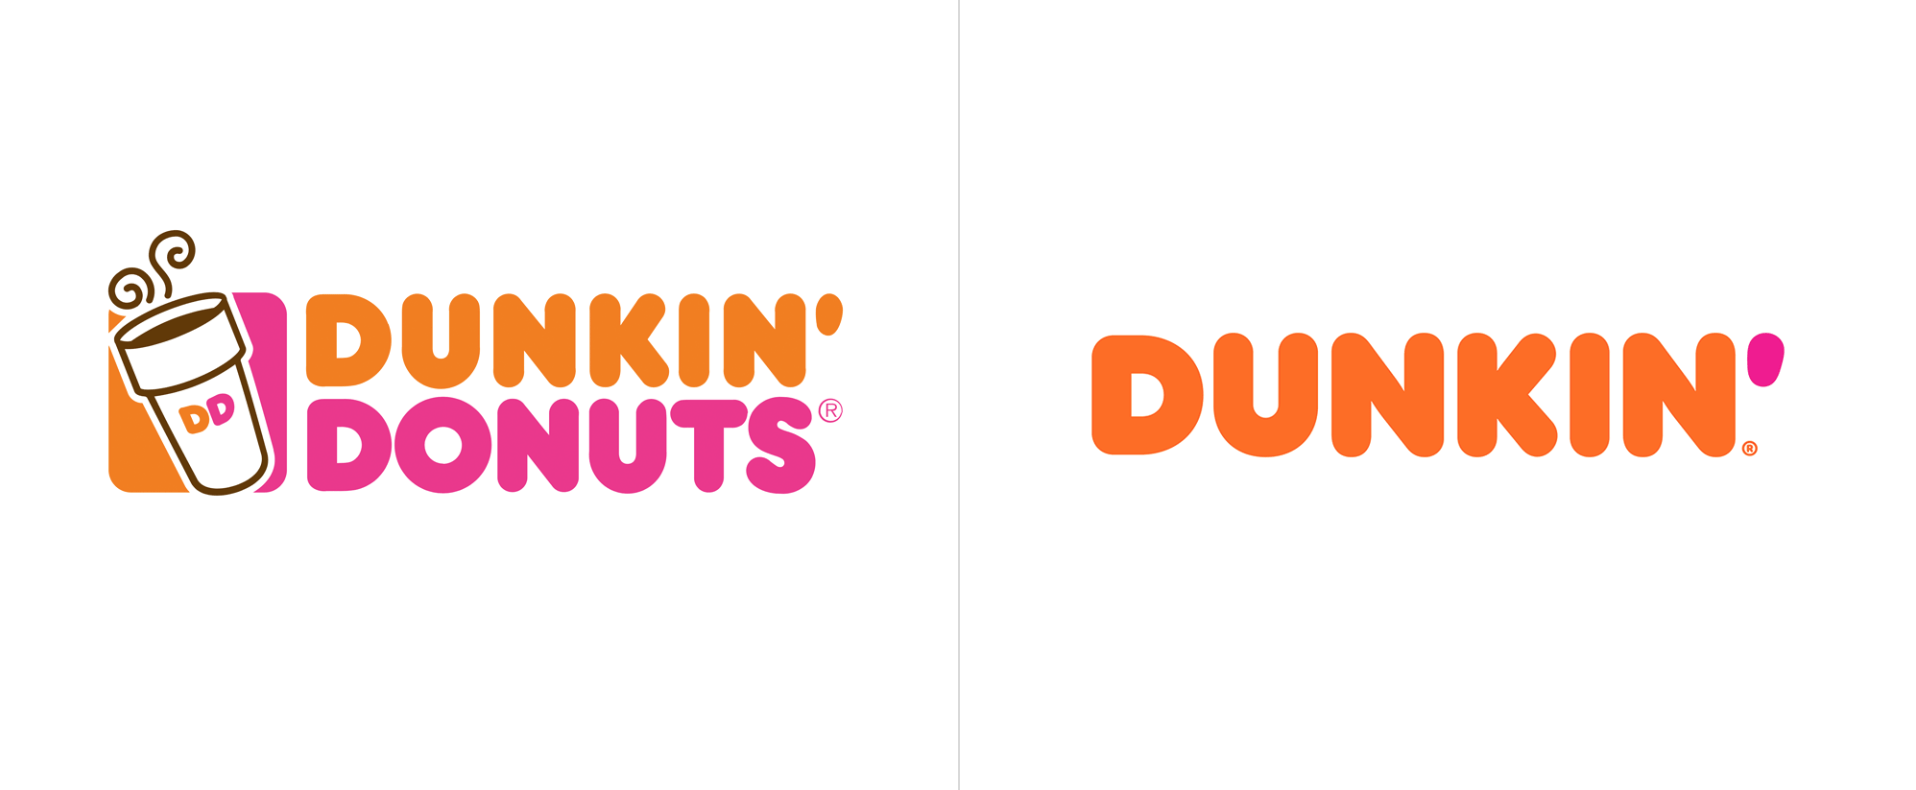 dunkin donuts old and new brand